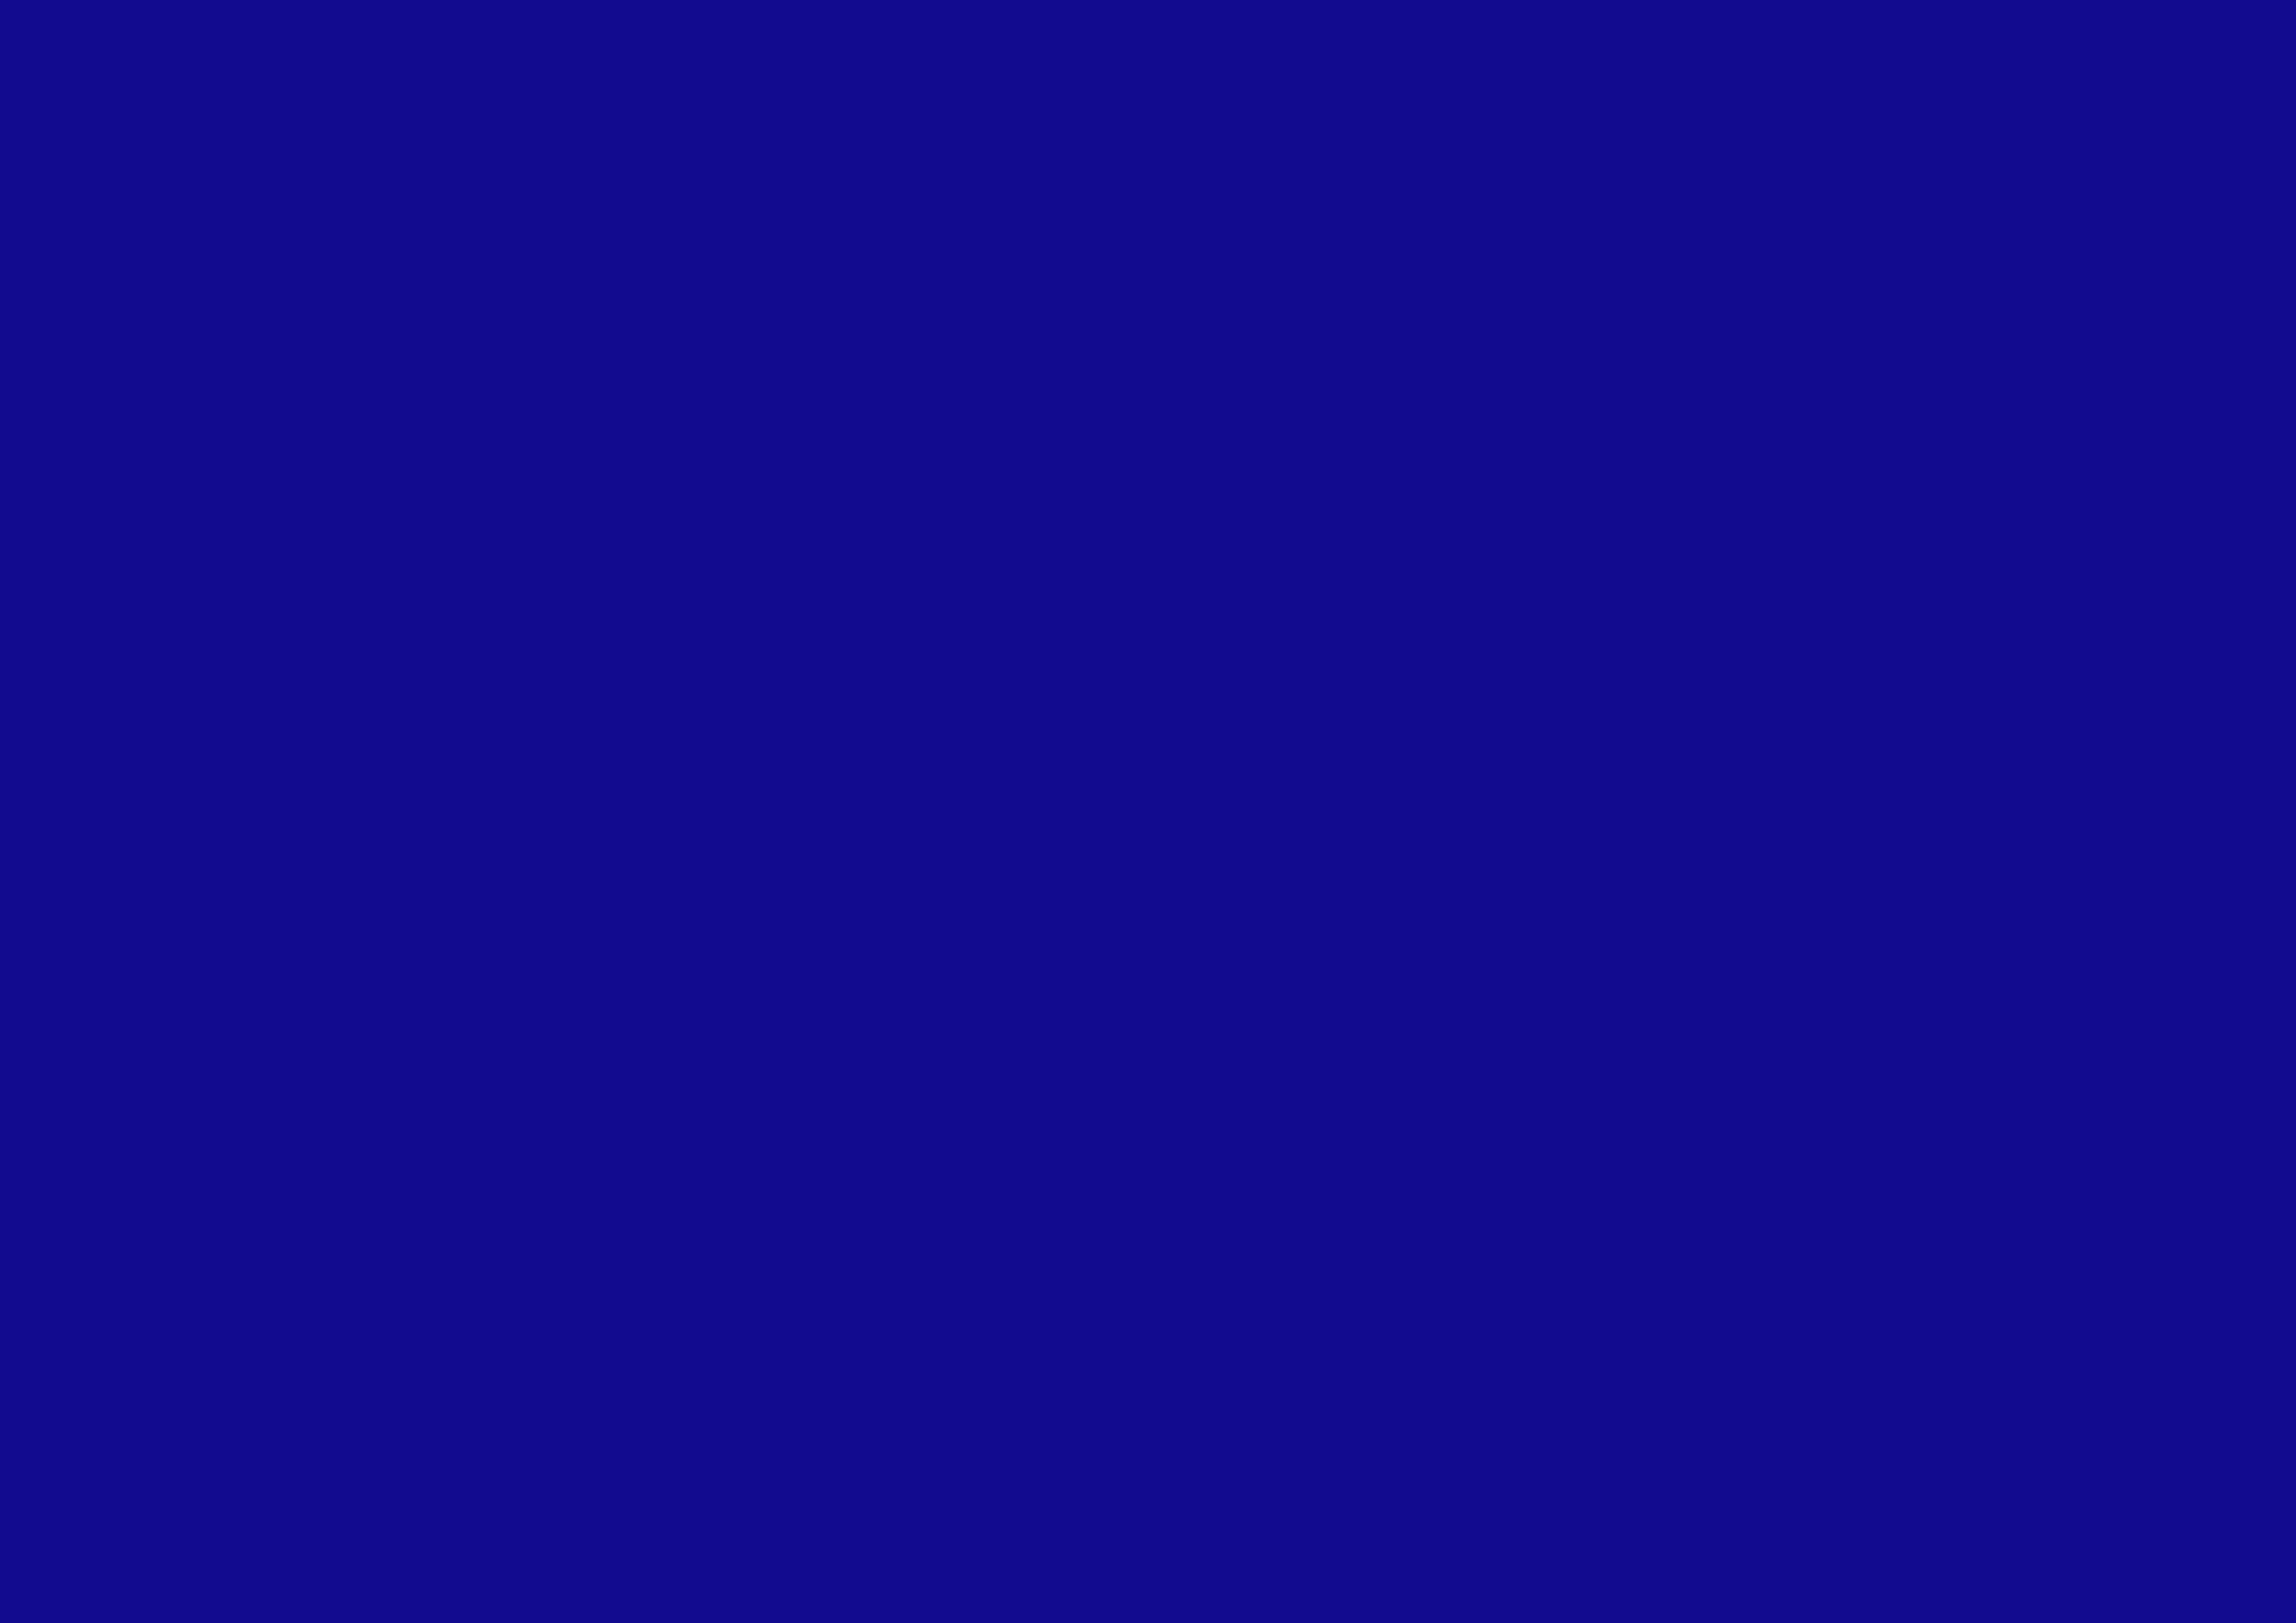 3508x2480 Ultramarine Solid Color Background